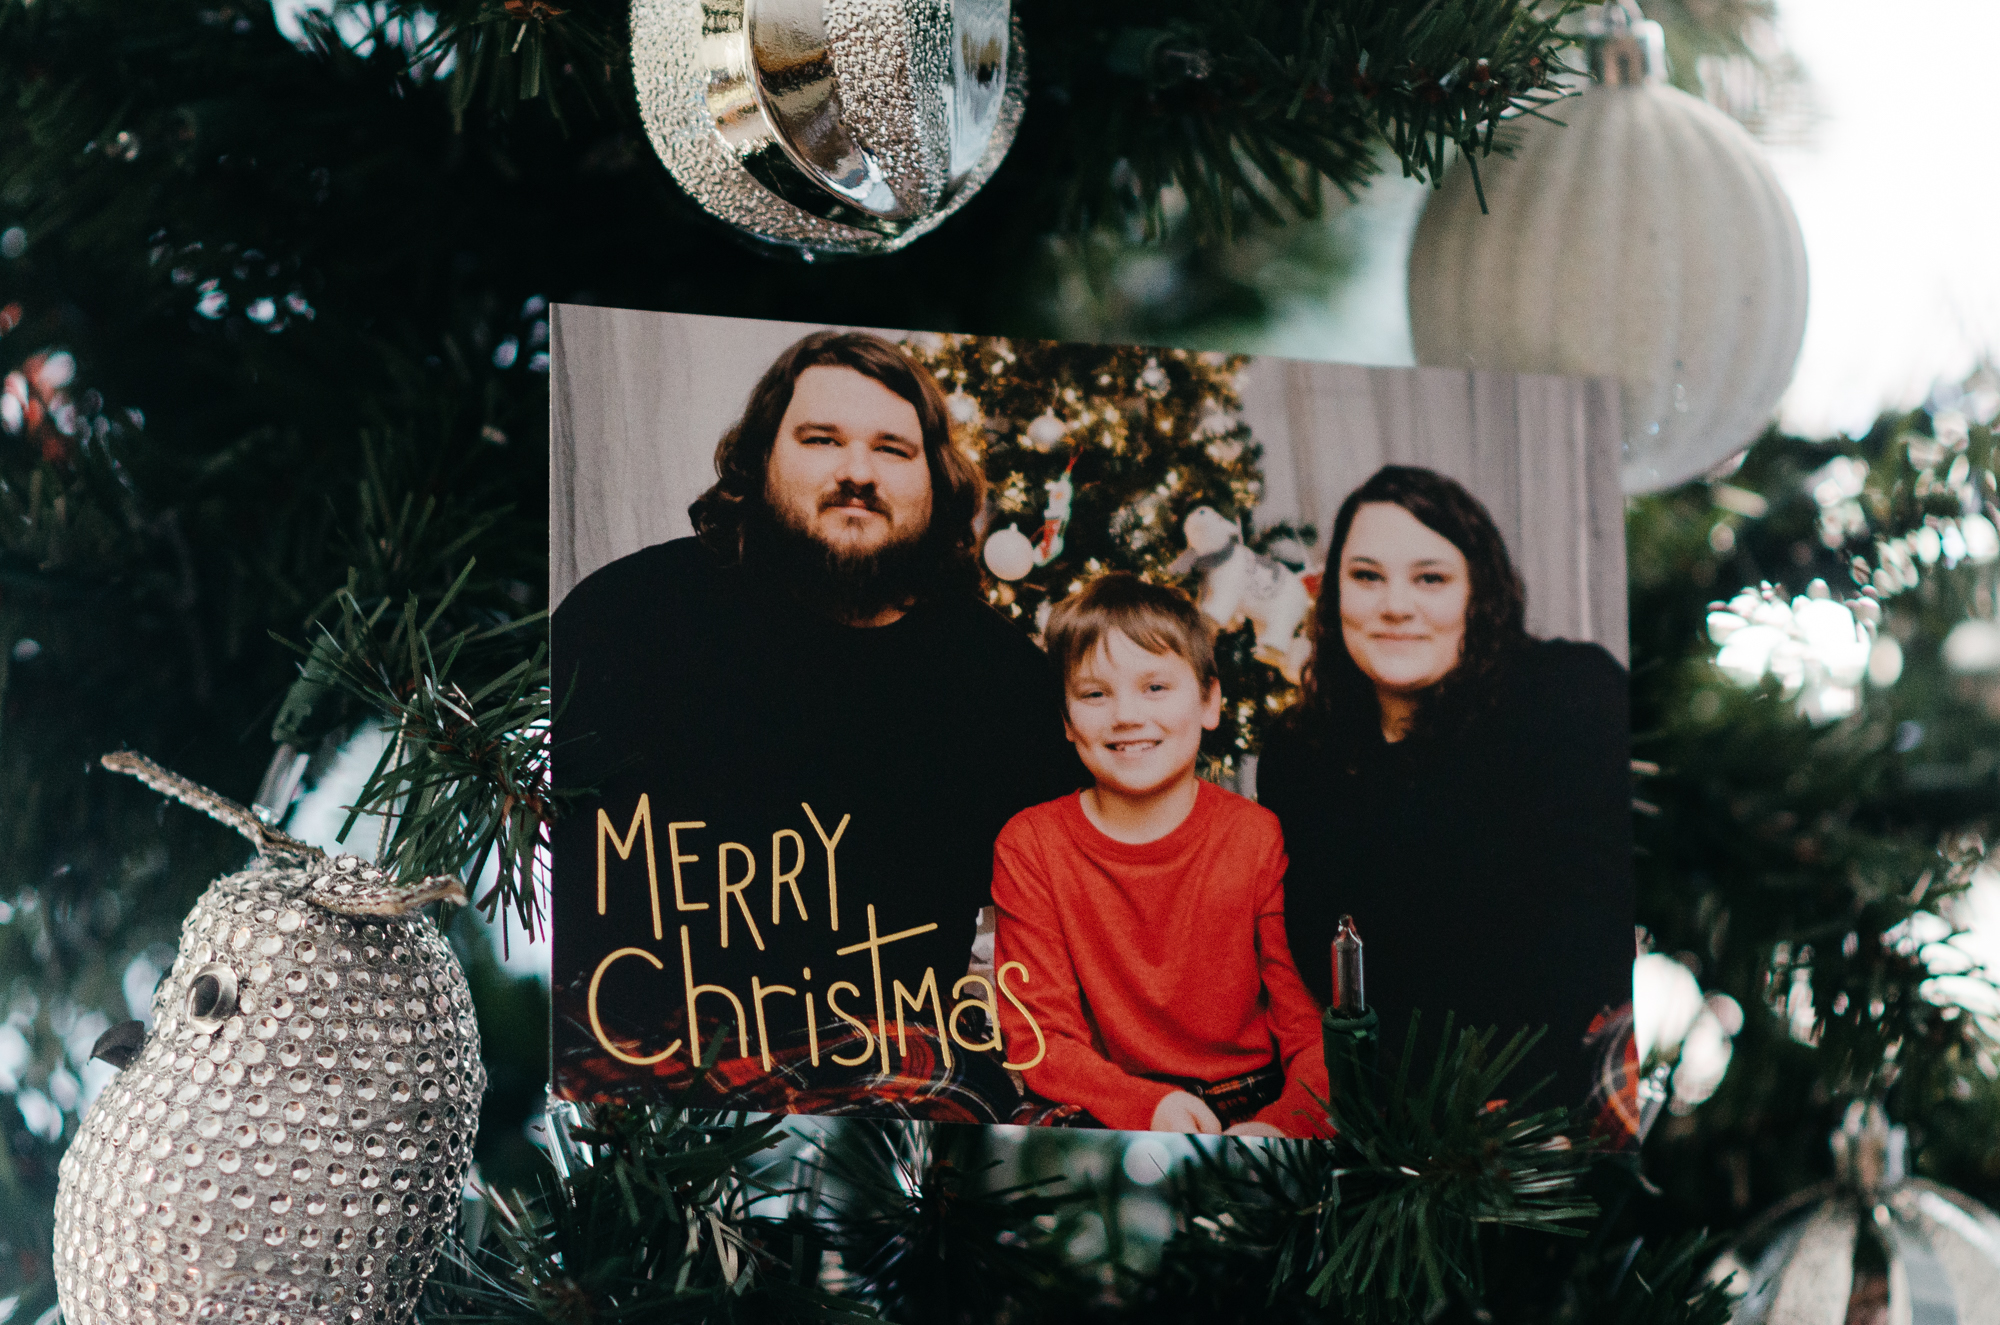 samantha whitford photography austin texas photographer christmas 2017.jpg